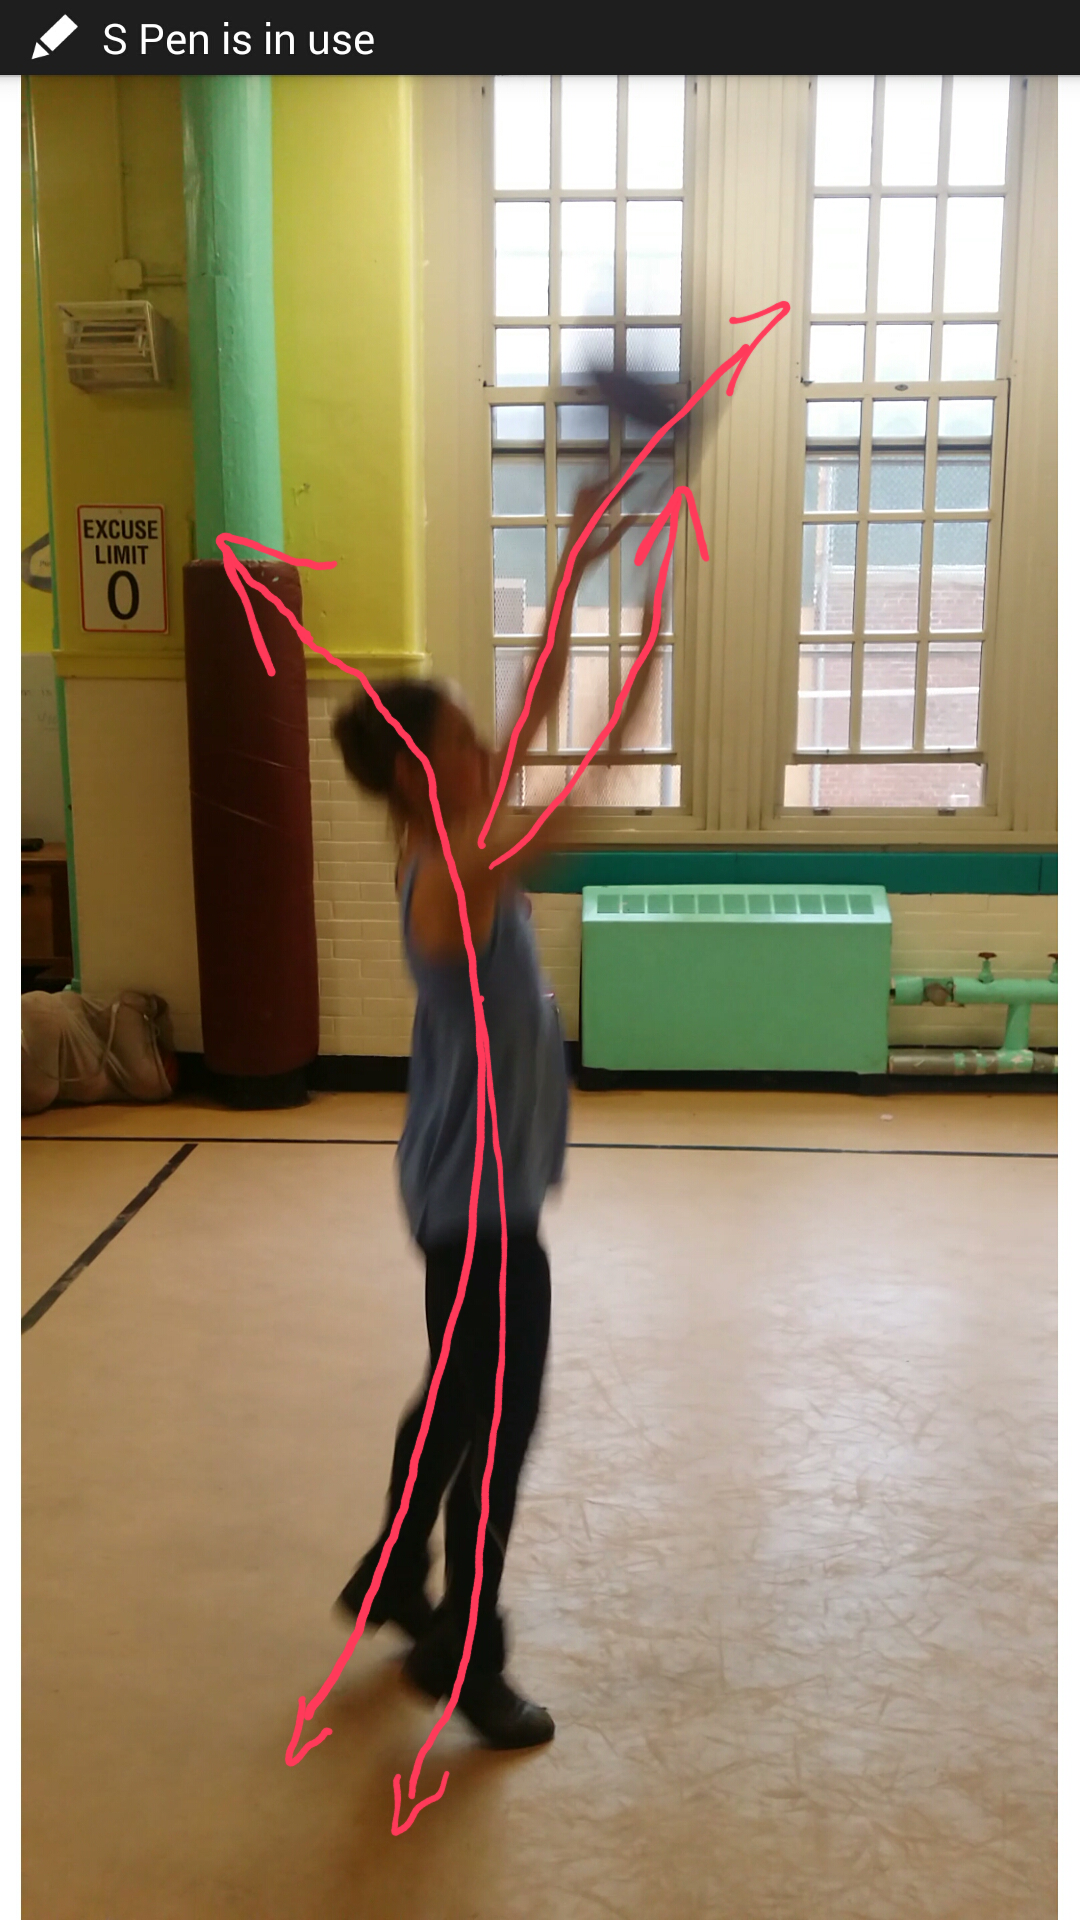 Exhibit B: poor shooting form, power of jump lessened by backwards pulls, arms not working together.